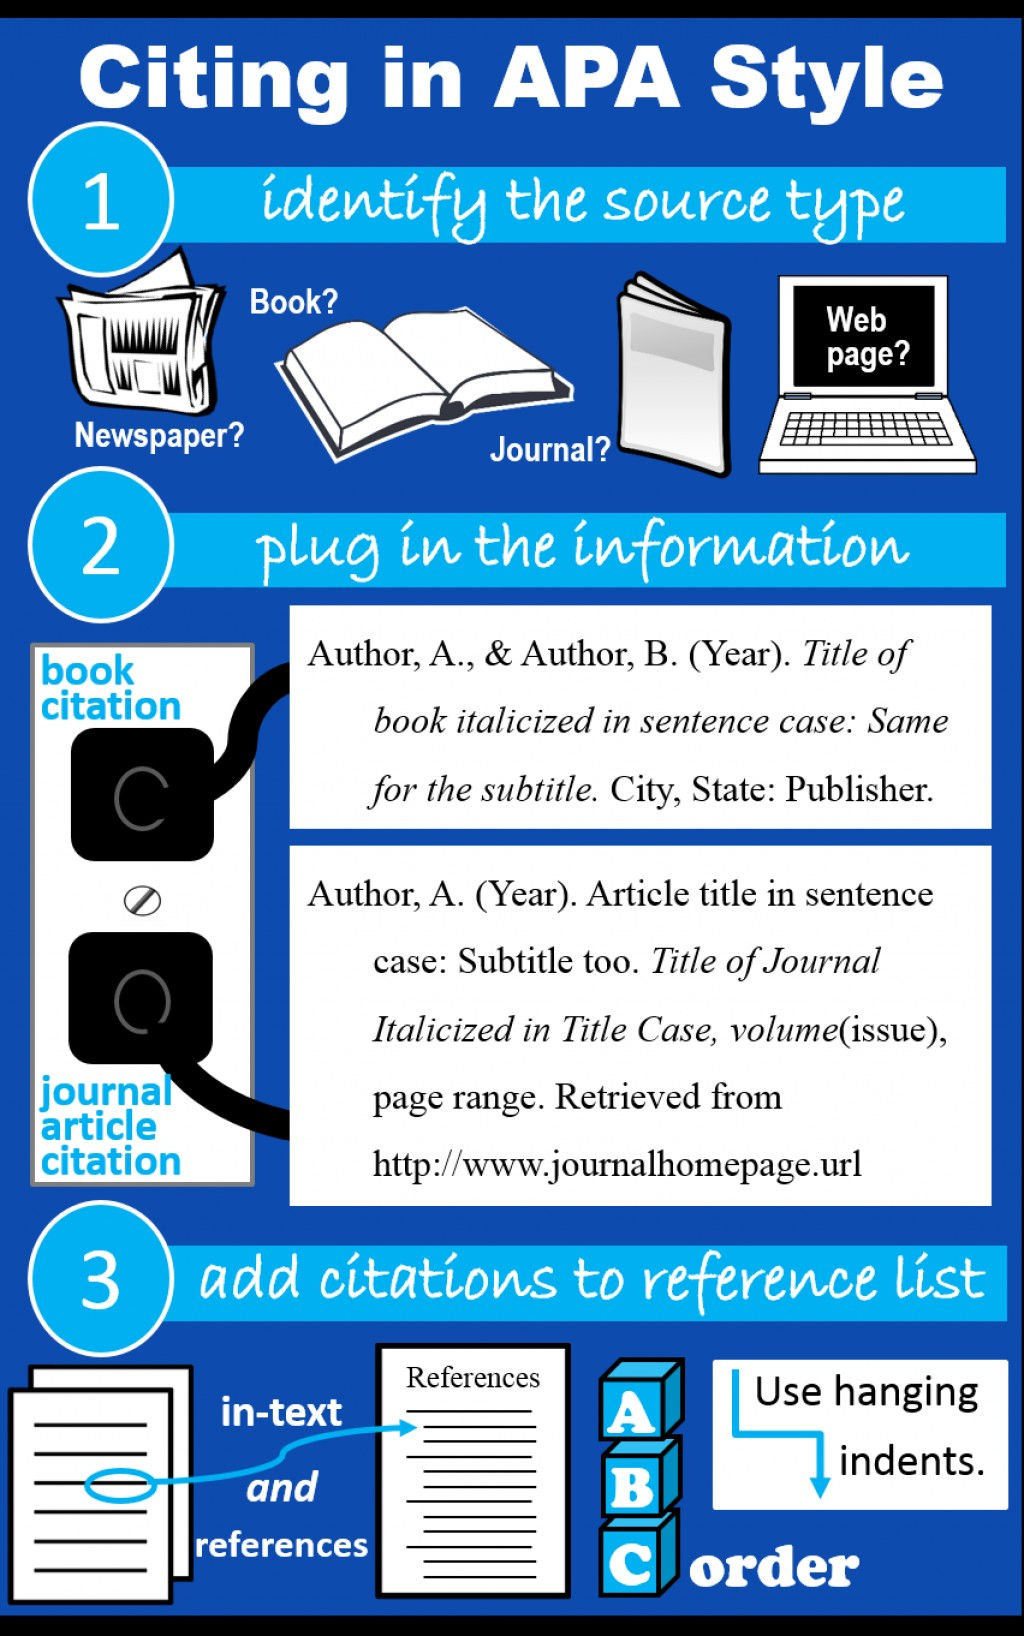 012 How To Cite Someone Elses Research Paper Apa Infographic Incredible Else's Large